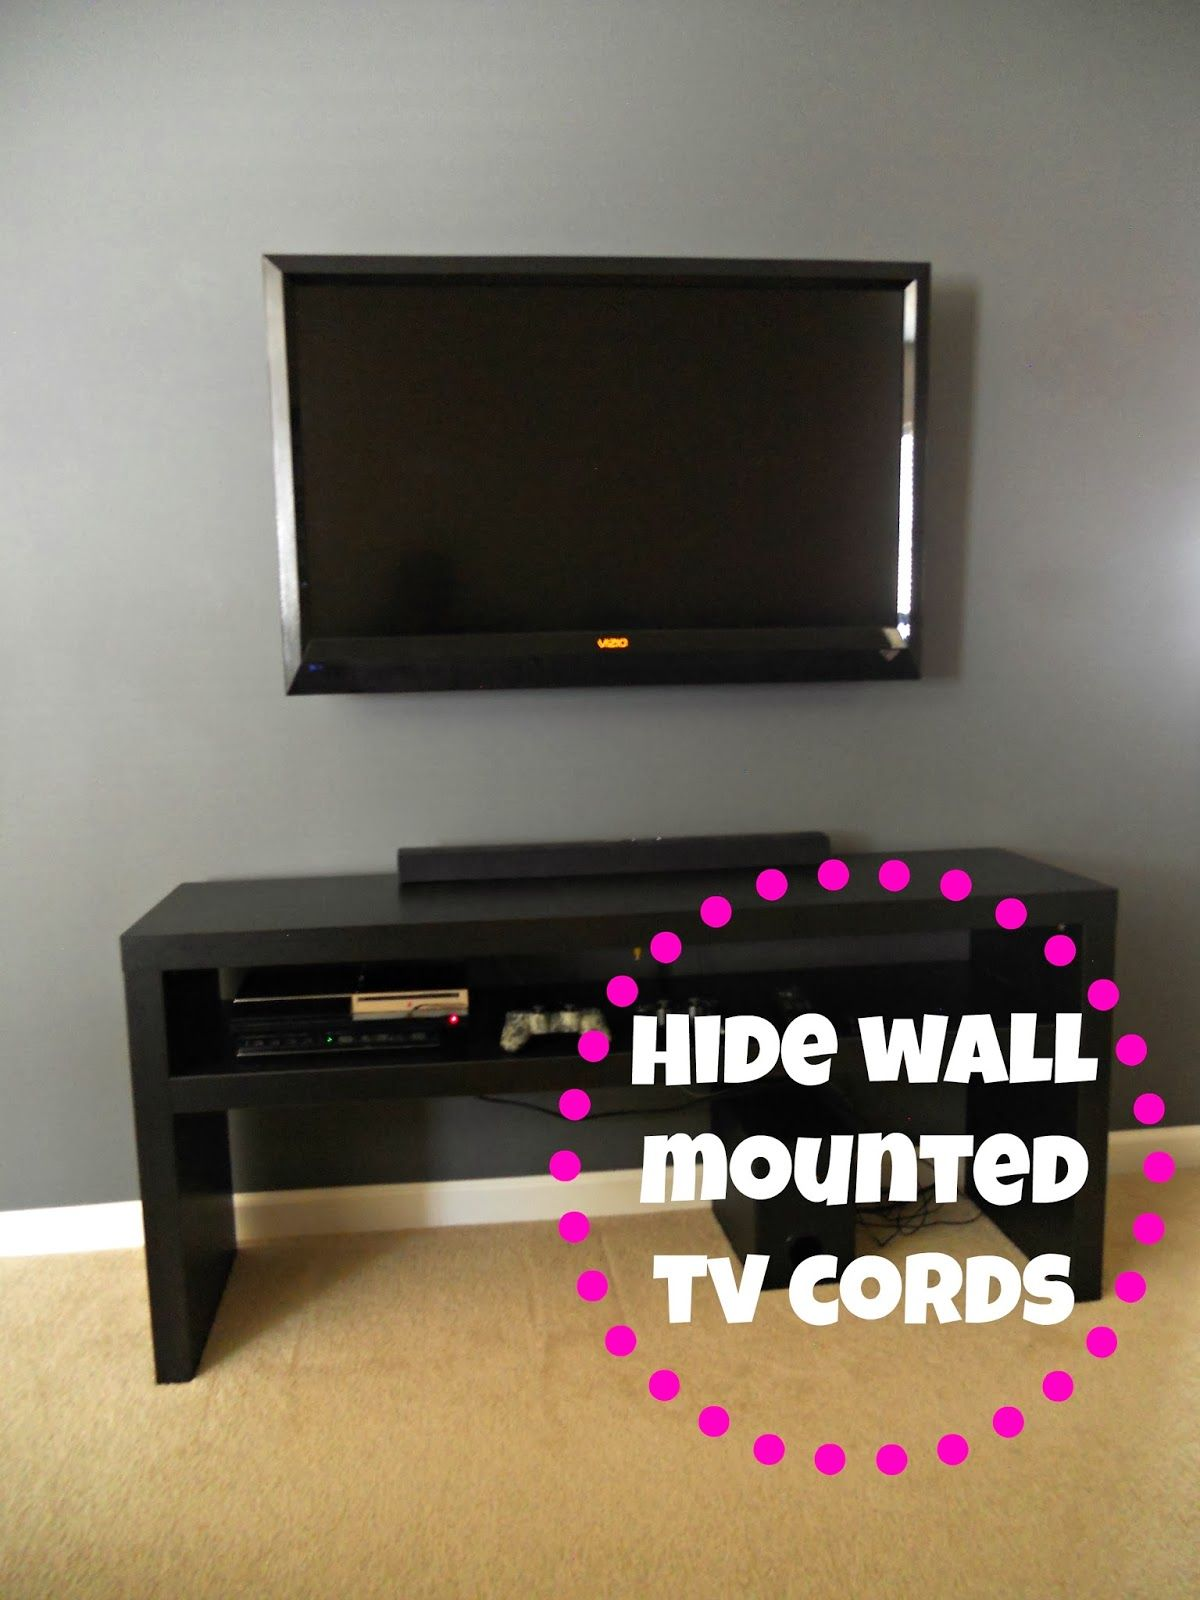 Hiding wall mounted tv cords decorating cents more for Disguise tv on wall